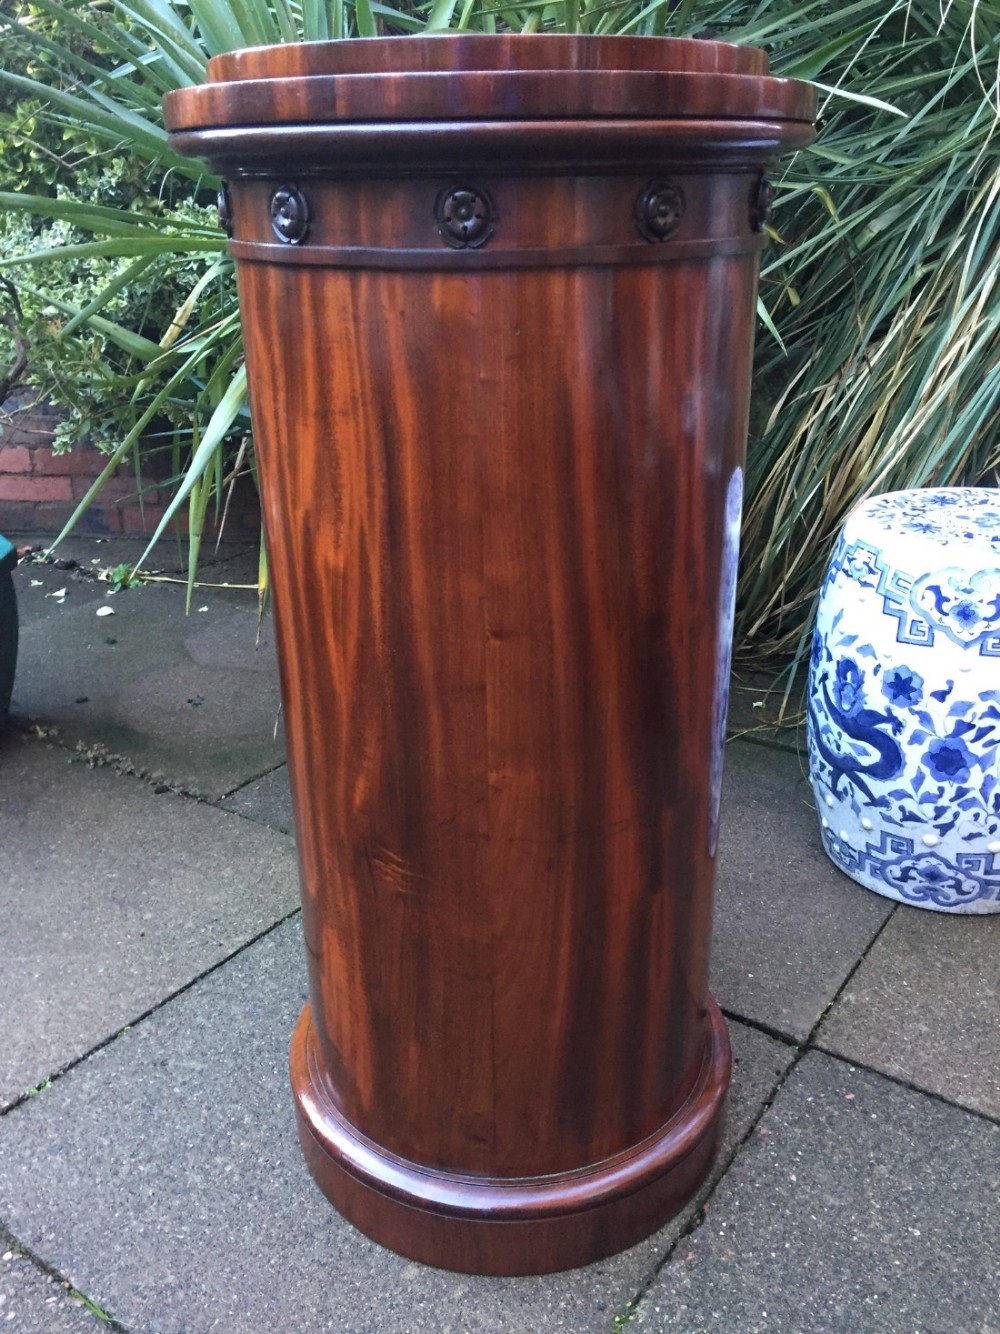 early c19th george iv period mahogany sculpture display column